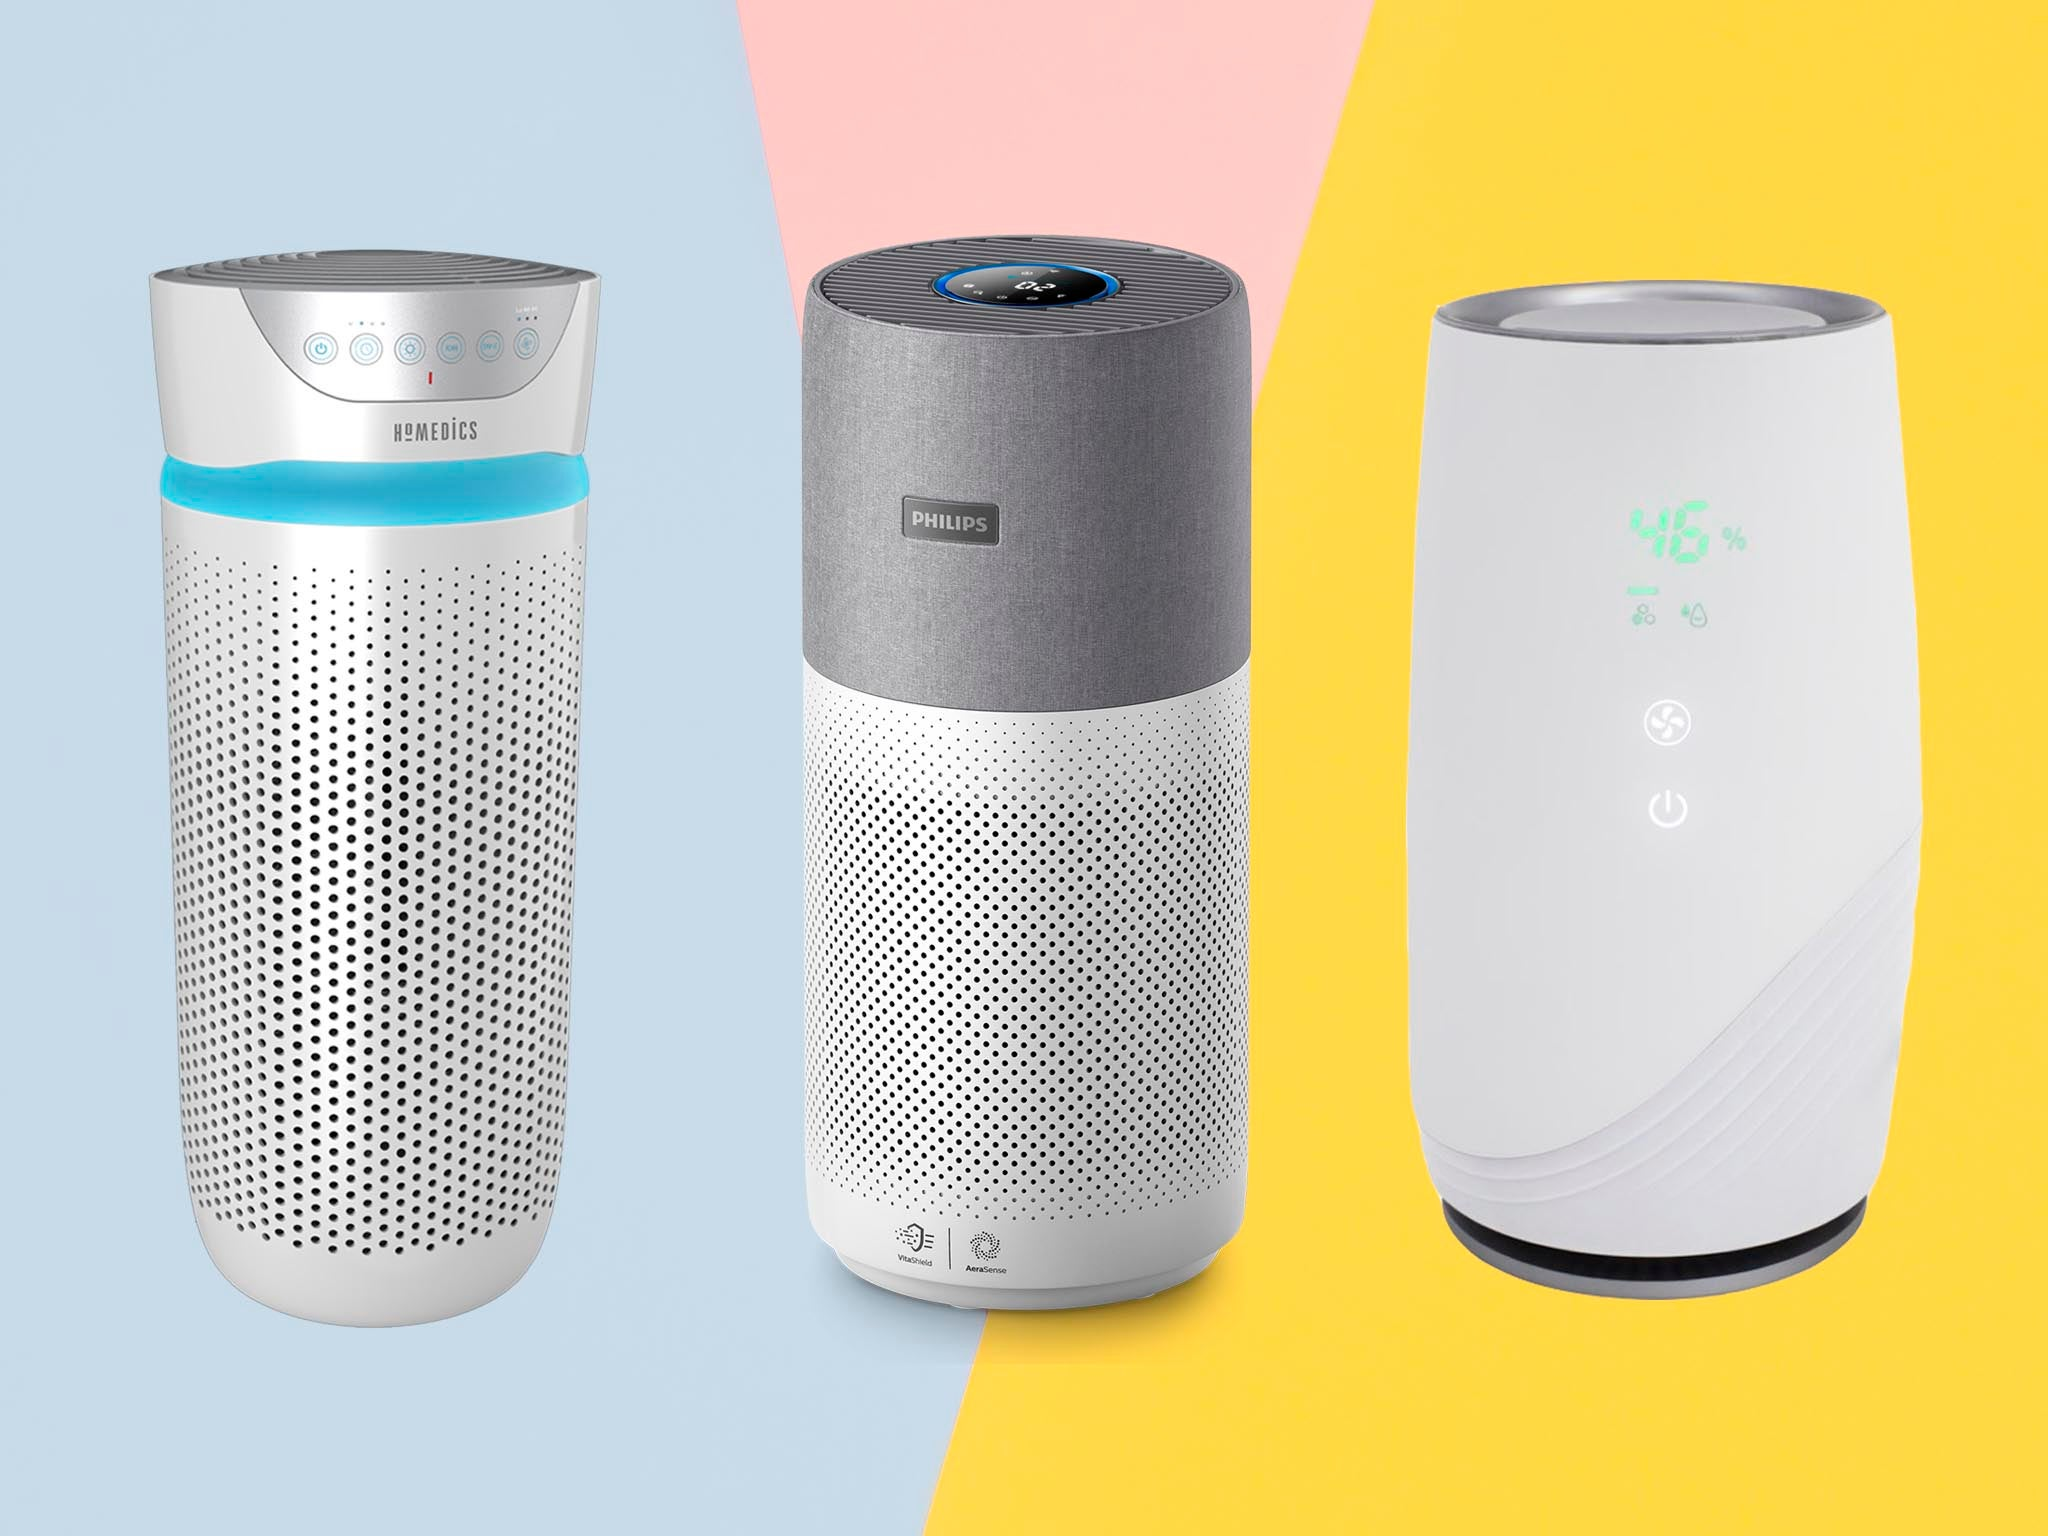 Dehumidifiers, air purifiers, aroma diffusers and cooling